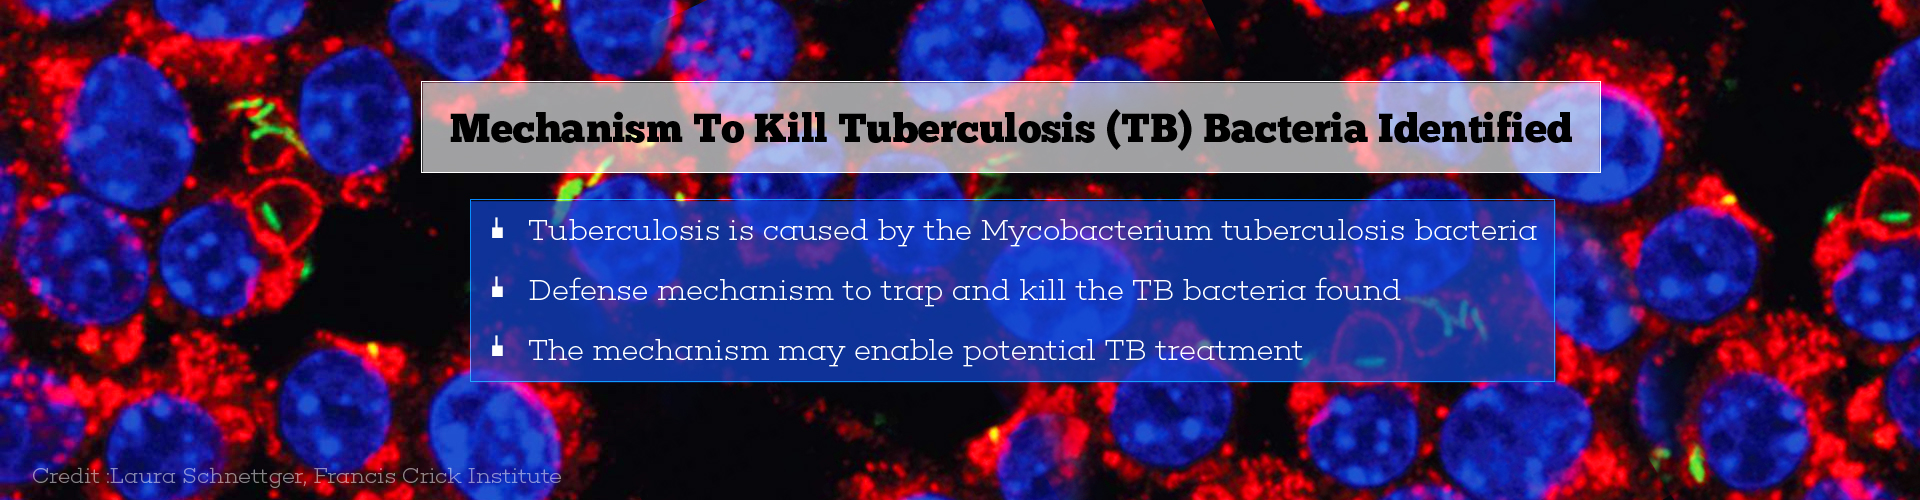 Natural Mechanism To Kill Tuberculosis Bacteria Discovered